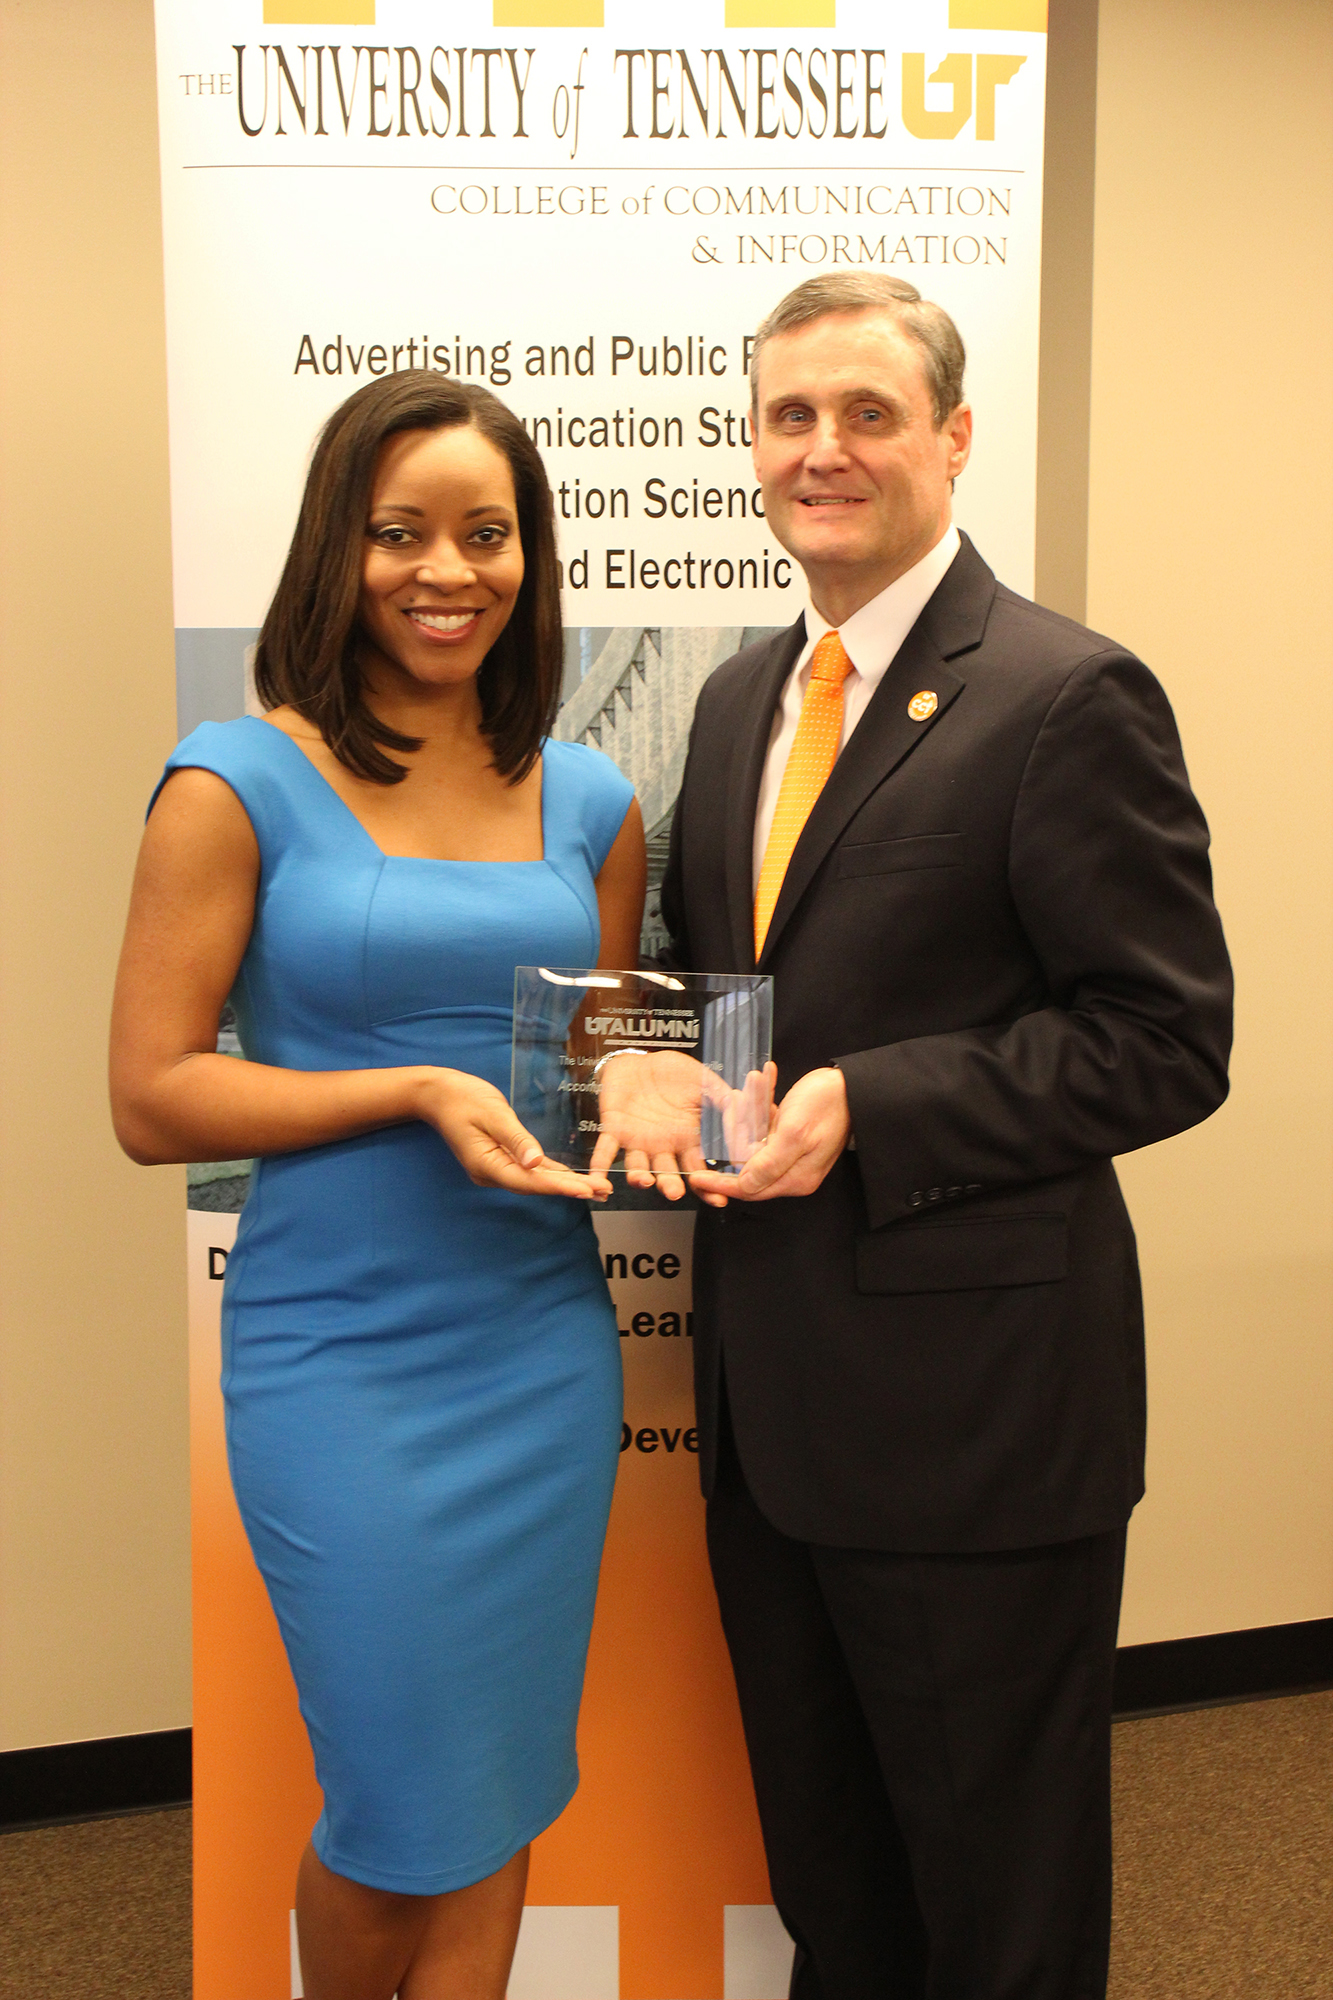 Sharrie Williams with Dean Wirth